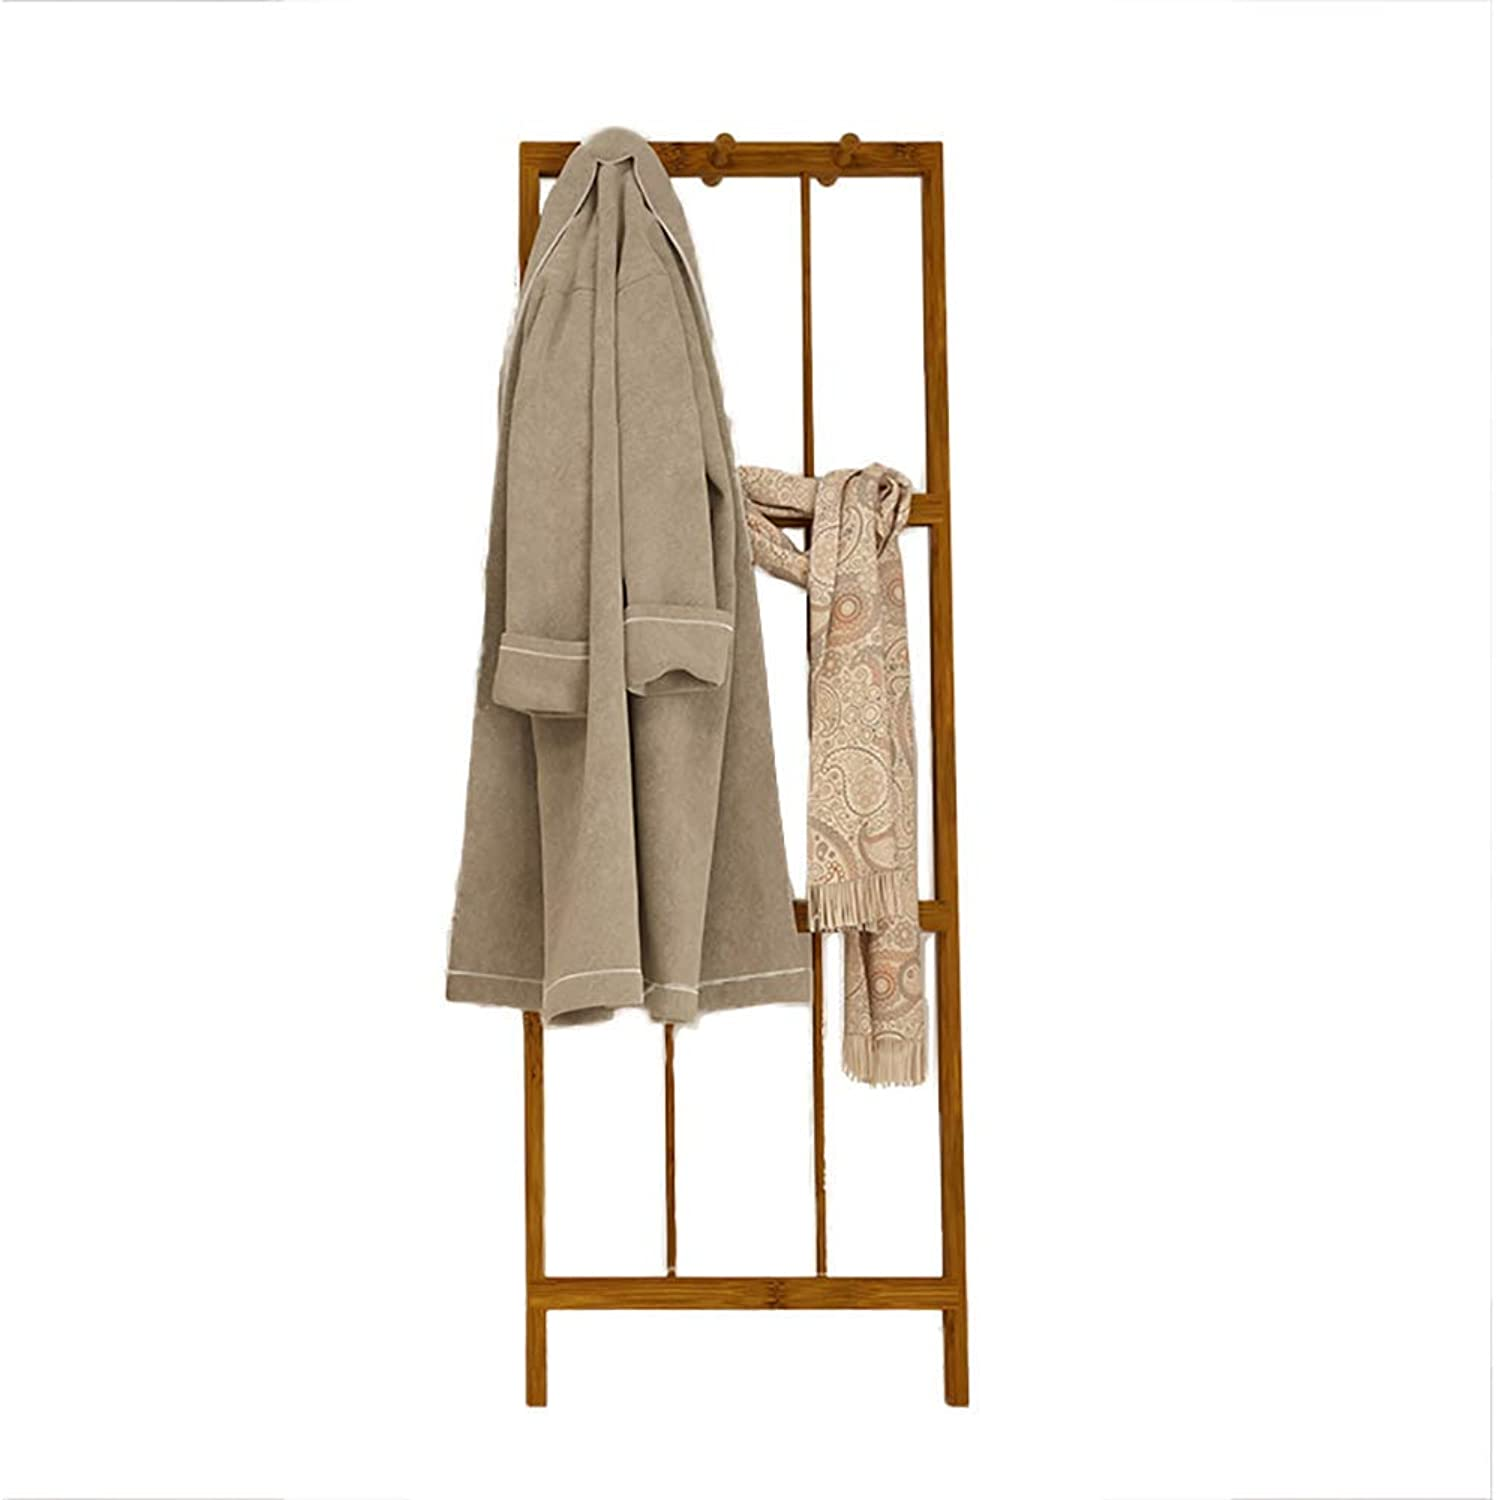 Foldable Corner Coat Rack, Bathroom Floor-Standing Coat Stand Hanger, Stability Save Space Durable Home Hall Concise-Bamboo 57x165cm(22x65inch)